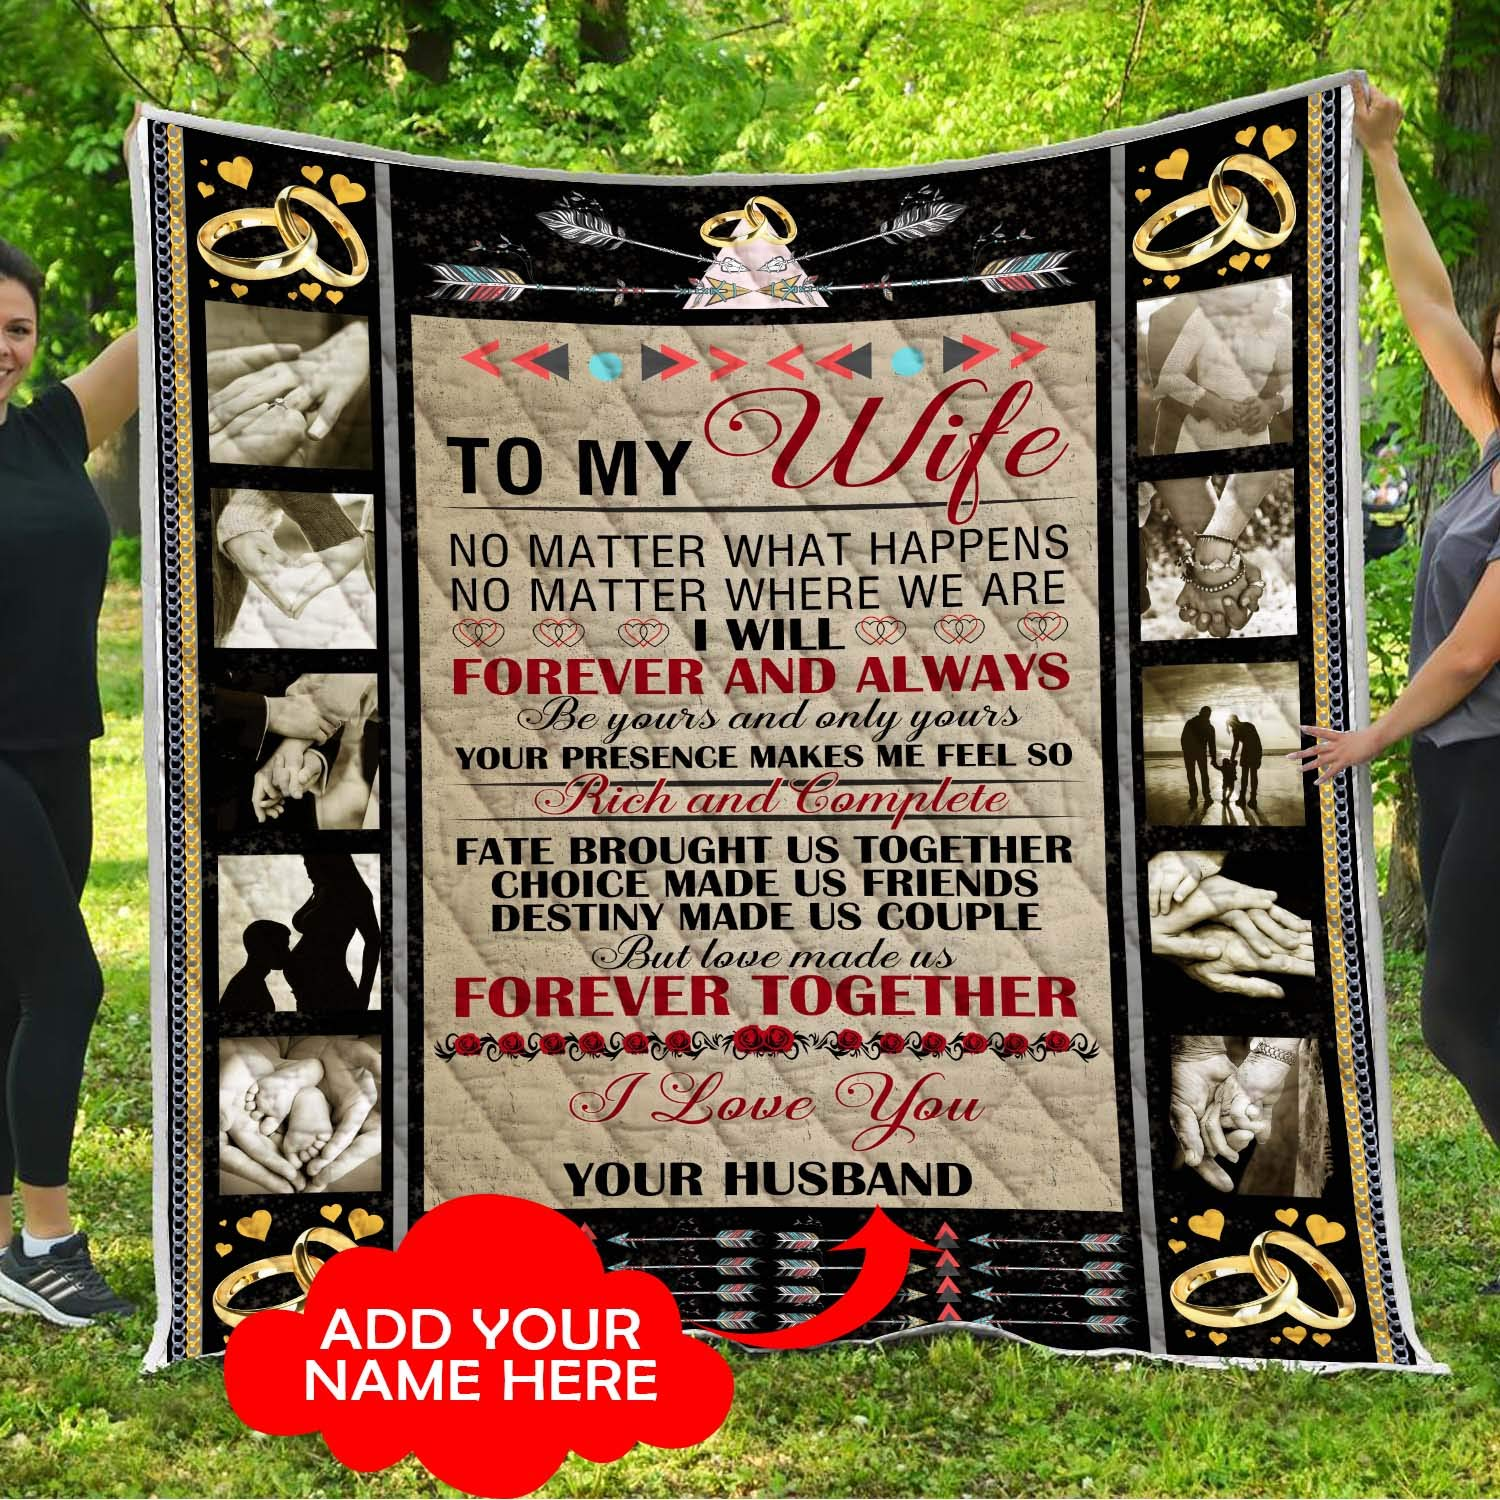 To My Gorgeous Wife I Love You Quilt Pattern Blanket Comforters with Reversible Cotton King Queen Full Twin Size Quilted Romantic Gifts Birthday Wedding Anniversary Presents for Wife from Husband Kids by VTH Global